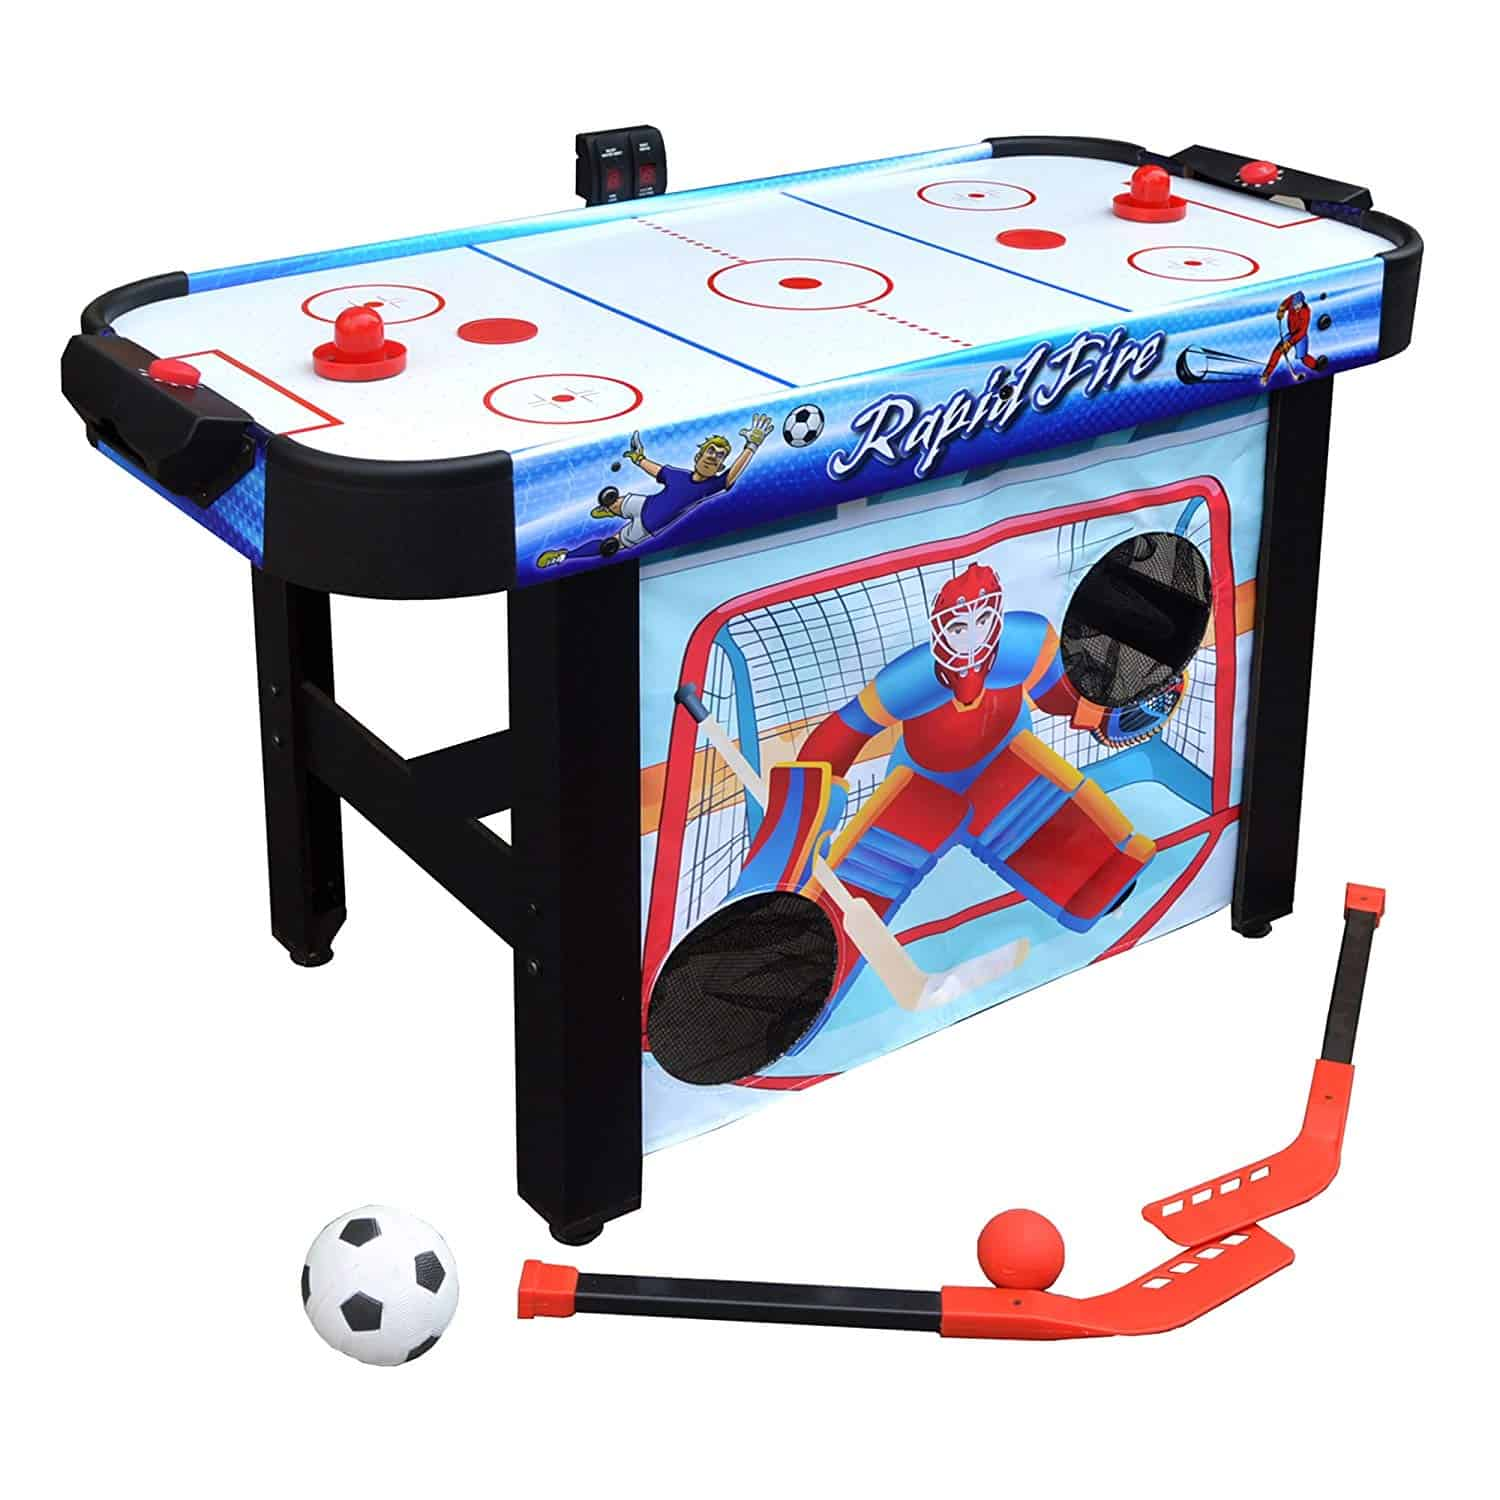 Hathaway BG1157M Rapid Fire 42-in 3-in-1 Air Hockey Multi-Game Table